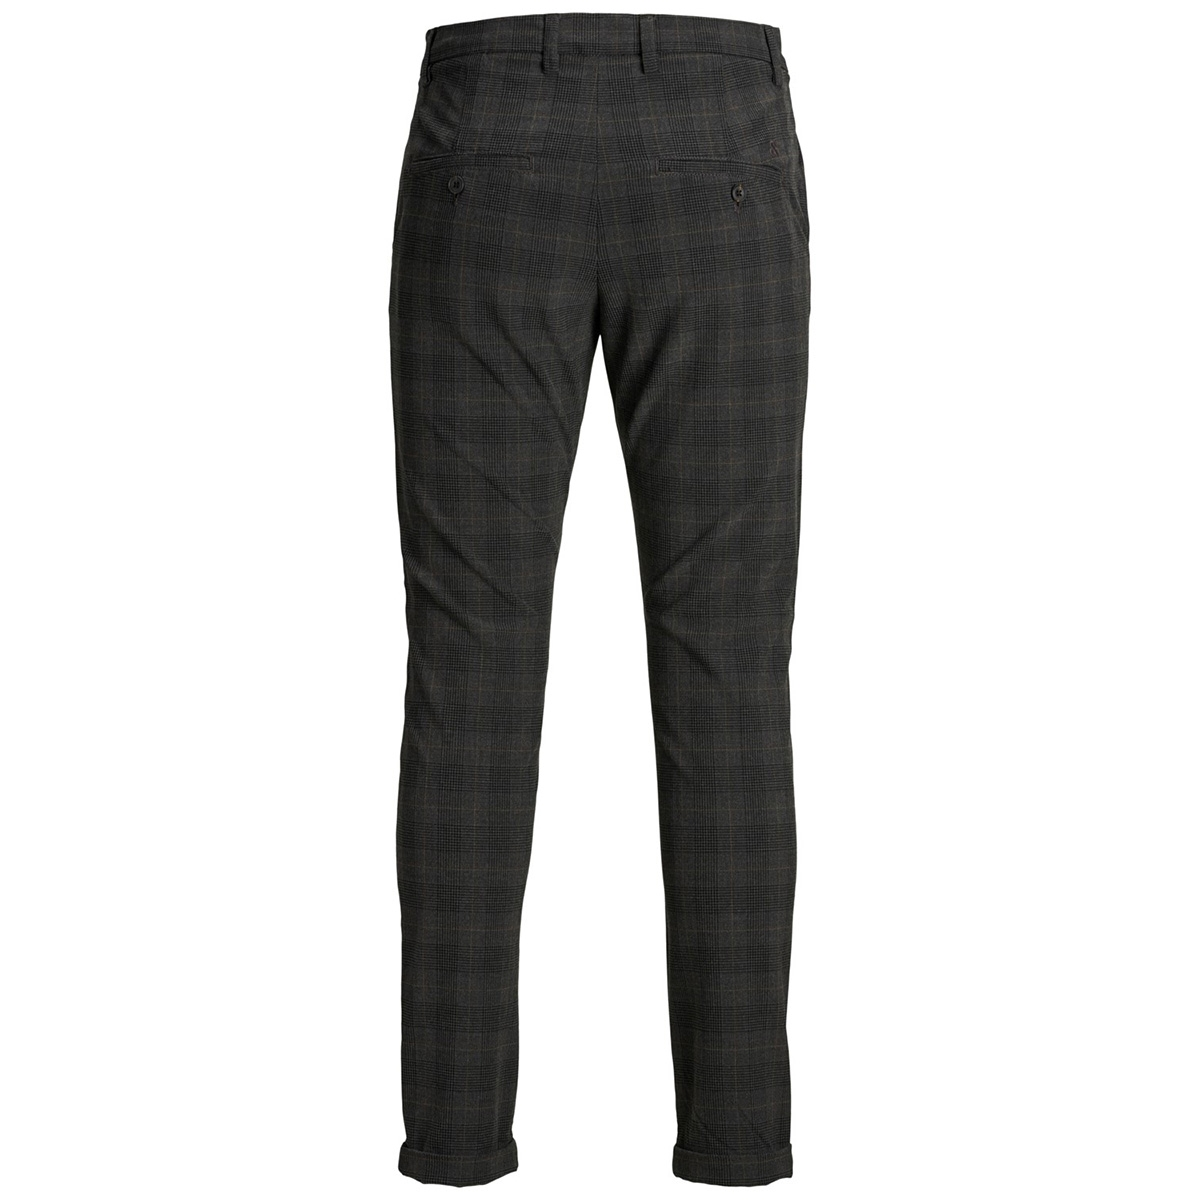 jjimarco jjconnor akm773 dg check n 12160583 jack & jones broek dark grey